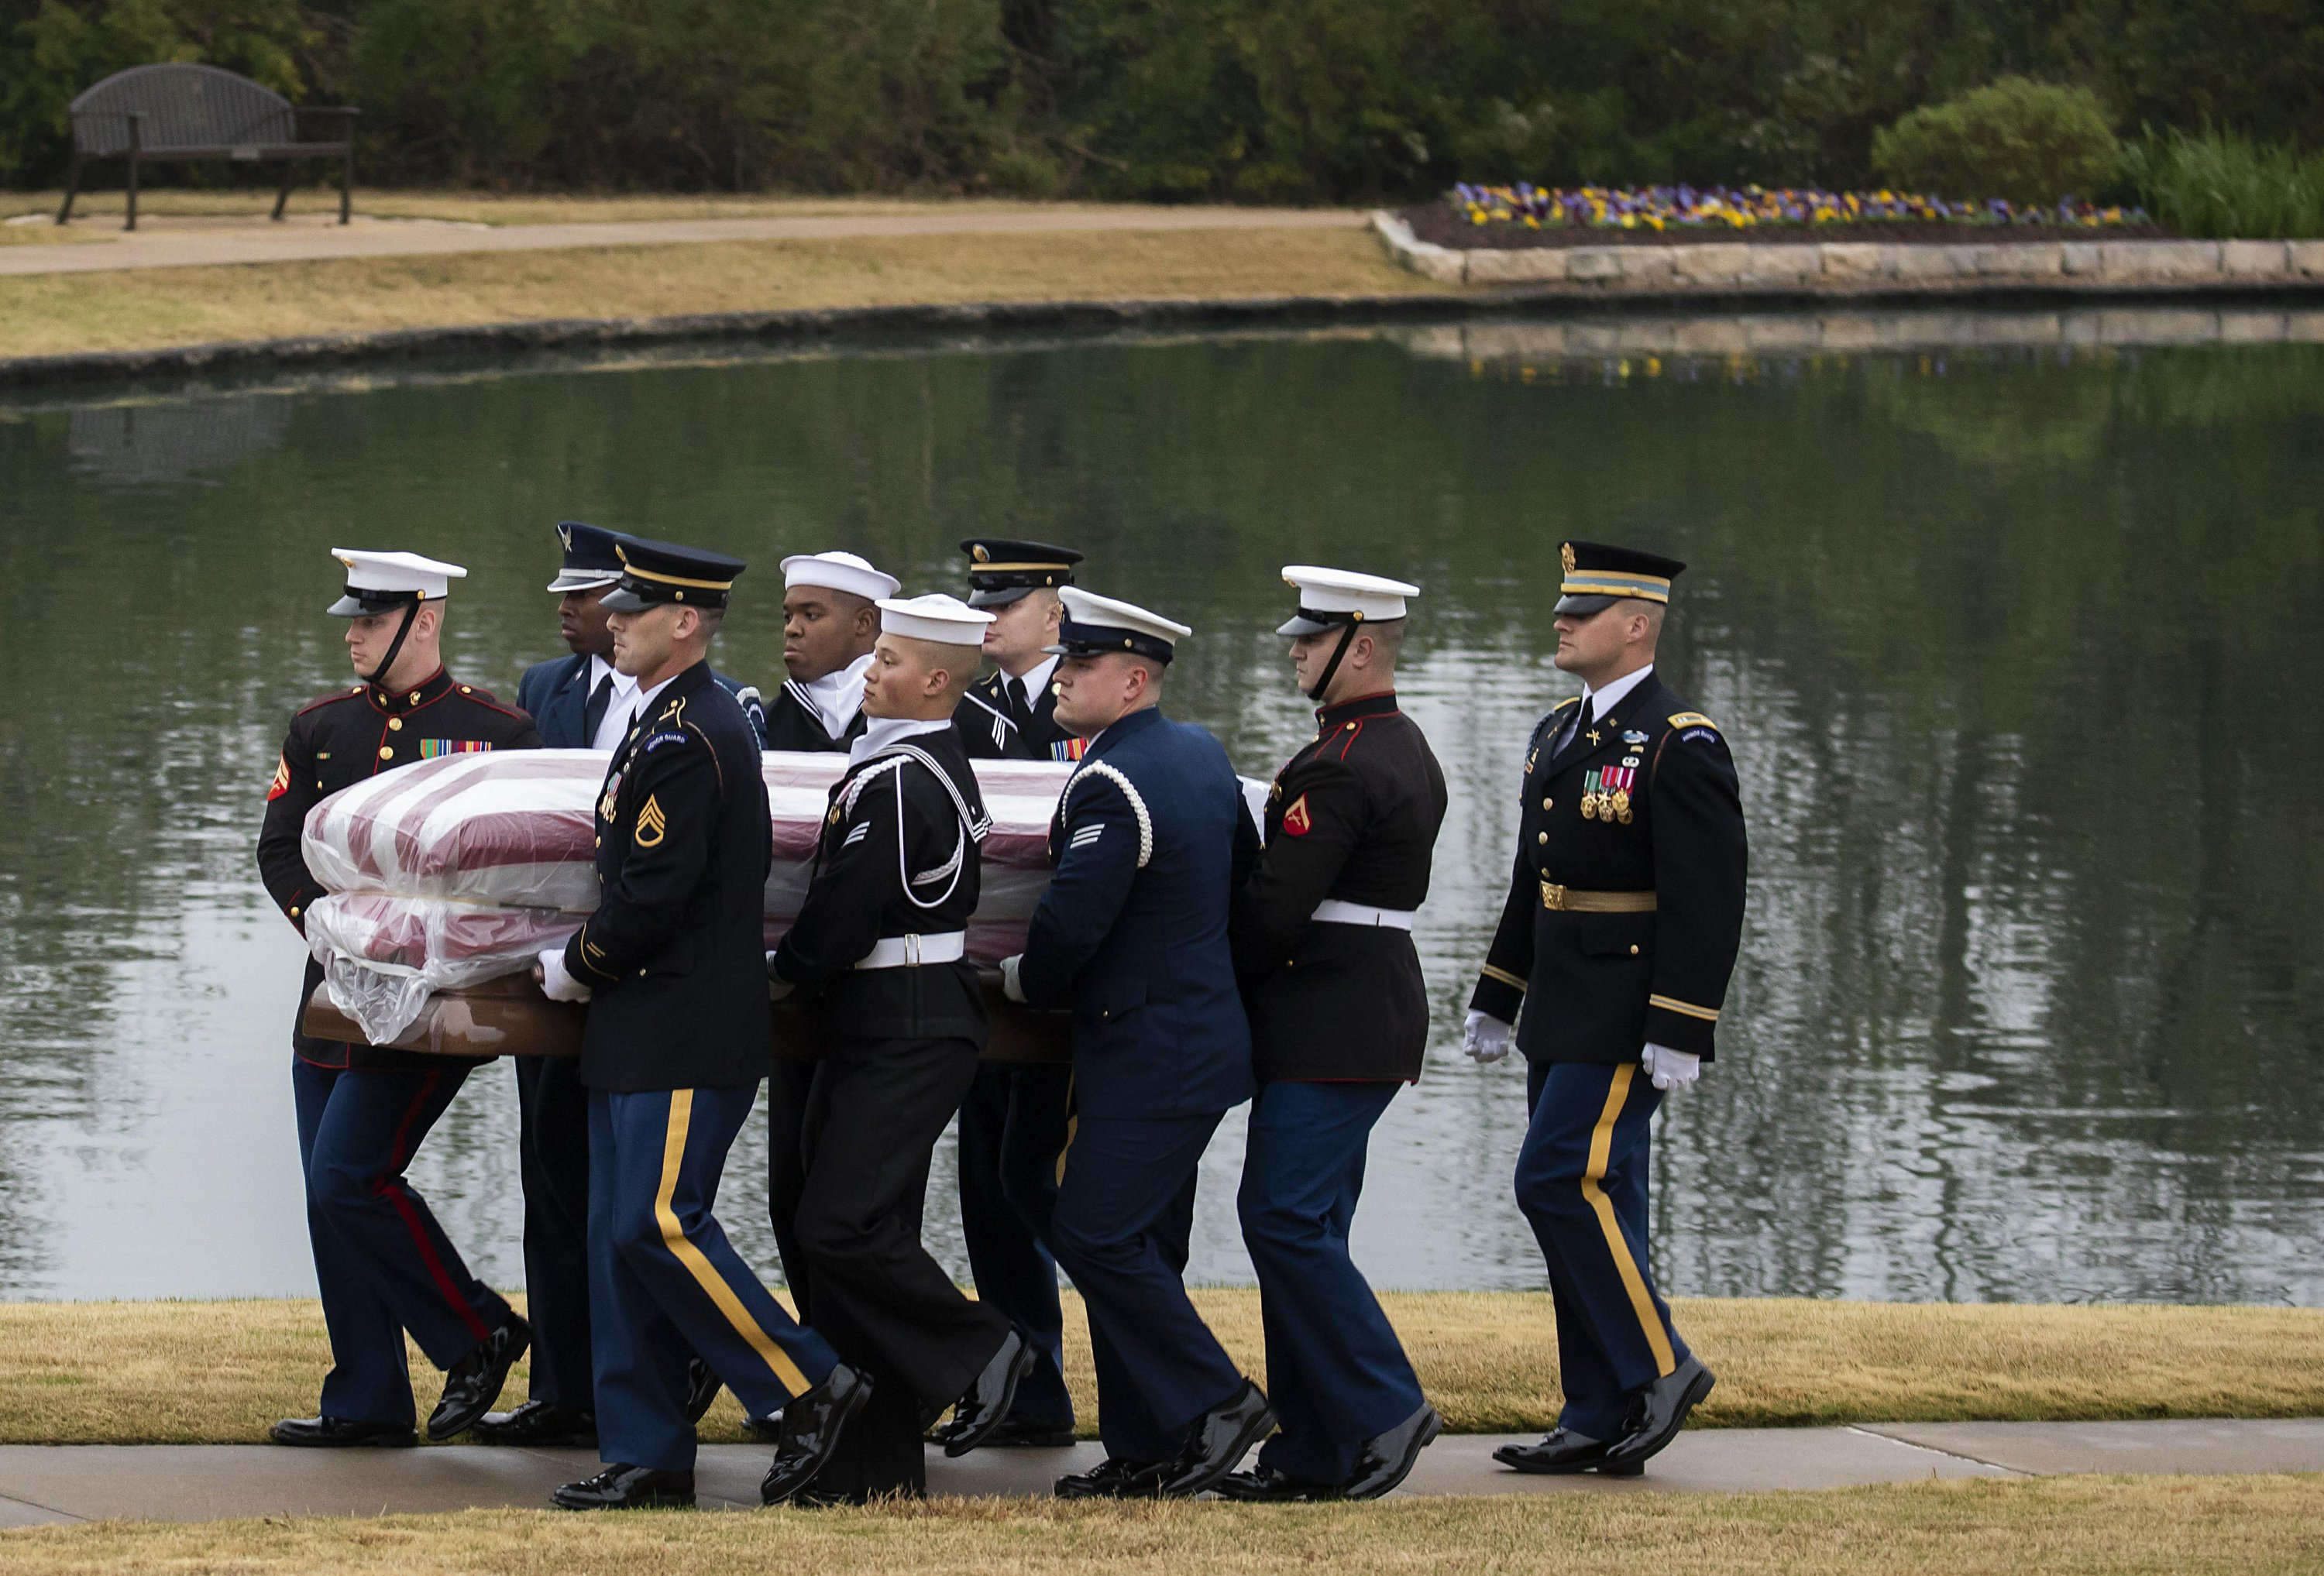 The Latest Private Graveside Service Ends Bush Buried